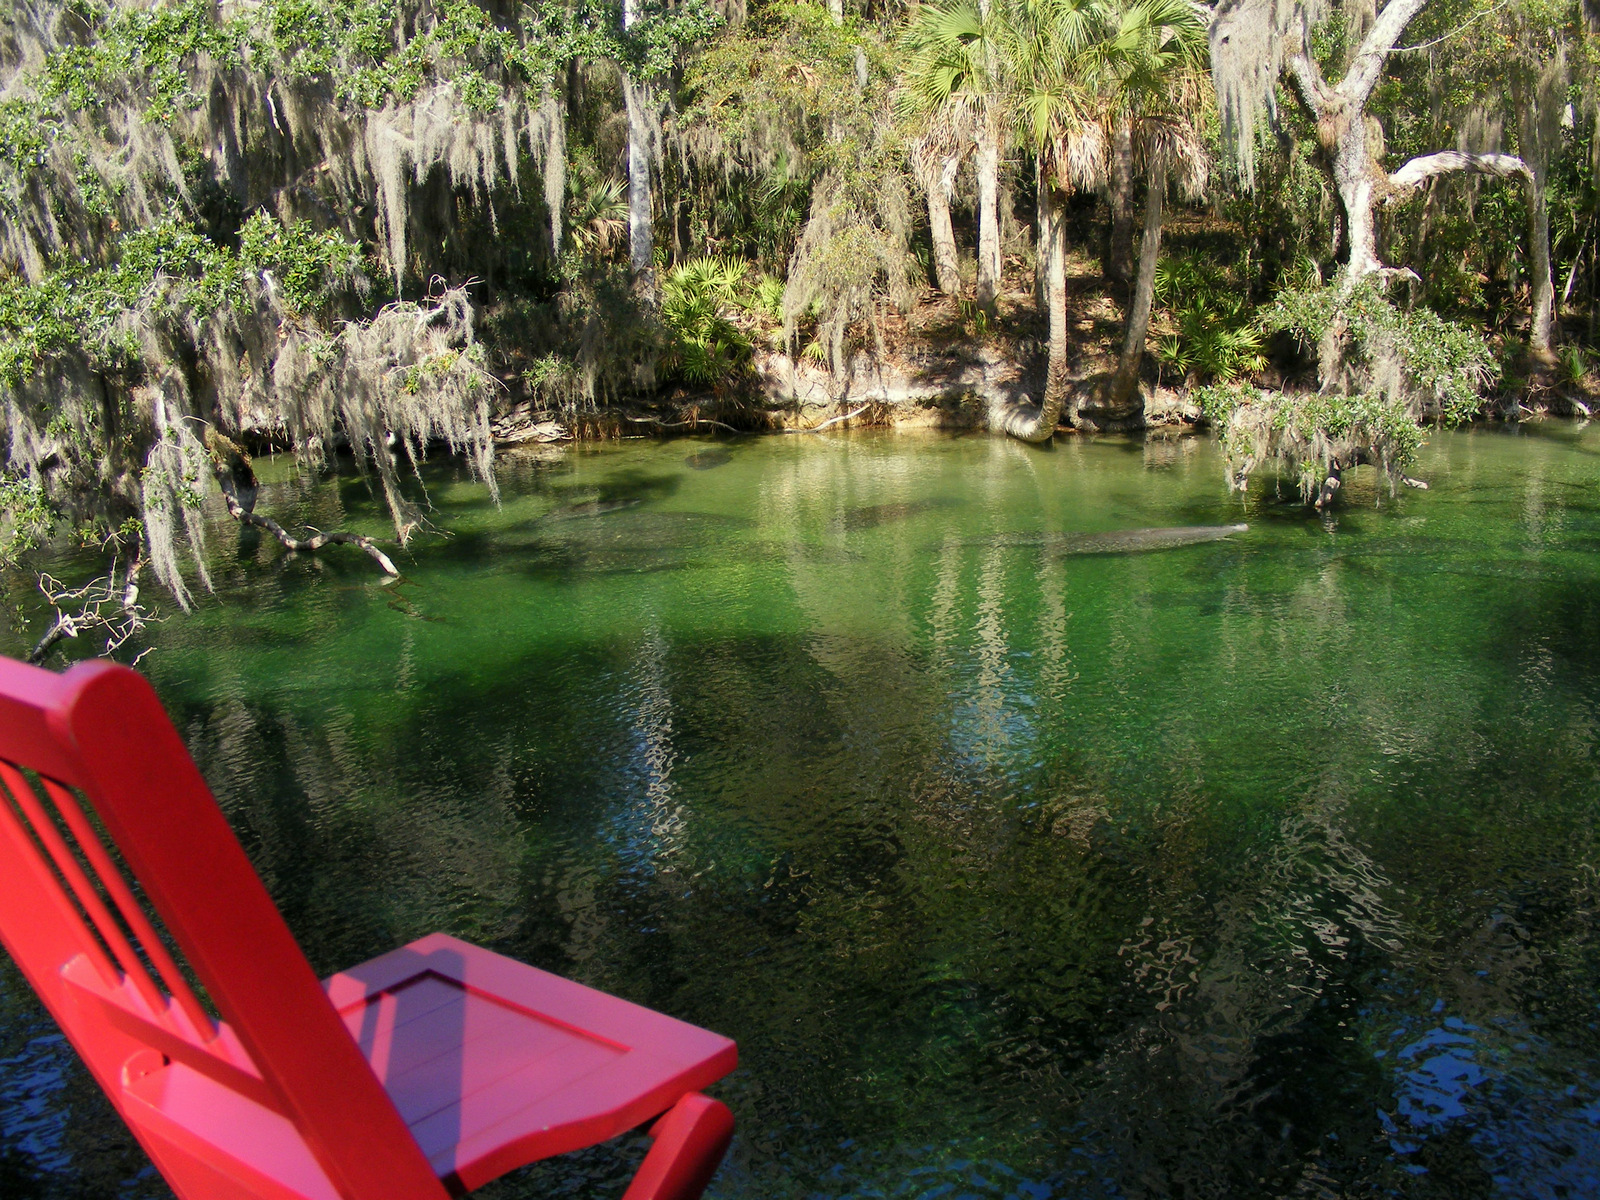 Manatees in Blue Spring Run at Blue Spring State Park, Florida (1/19/13)